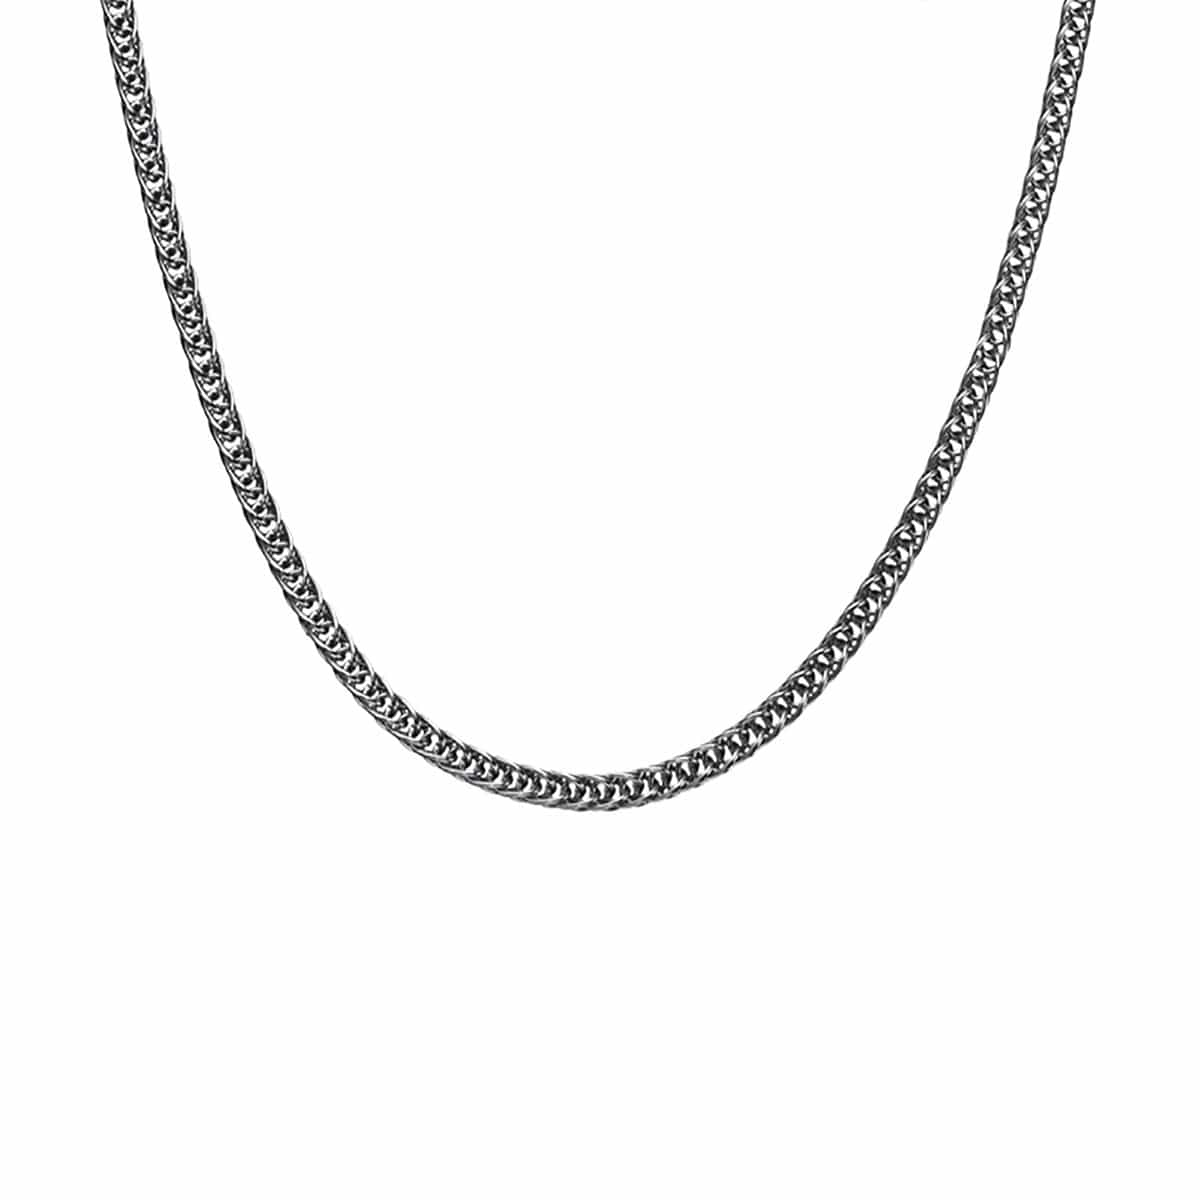 Silver Stainless Steel Polished 4 mm Round Wheat Chain Chains